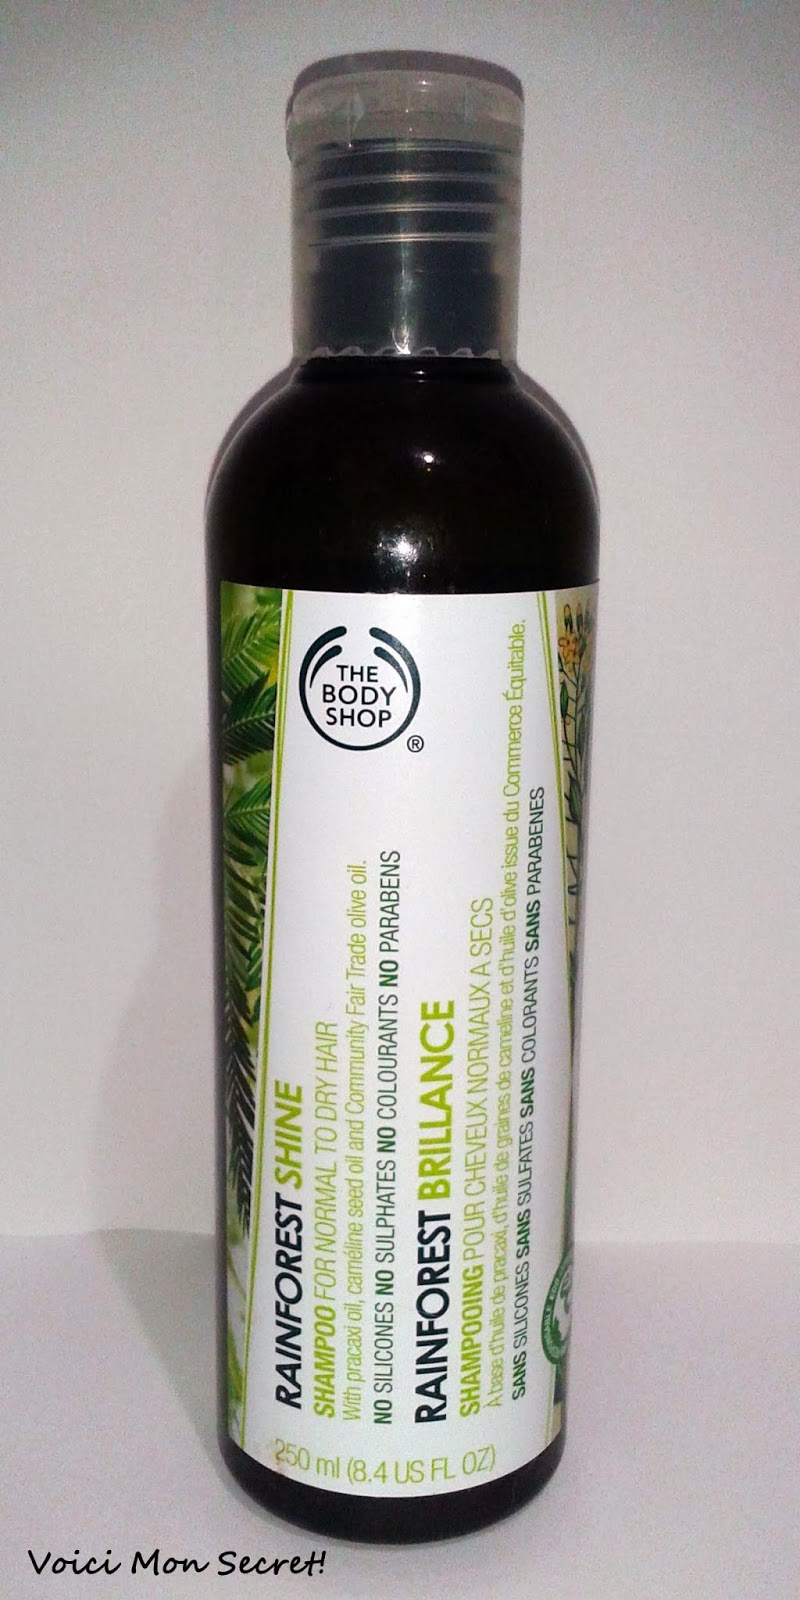 Top Five Body Shop Rainforest Balance Shampoo Ingredients